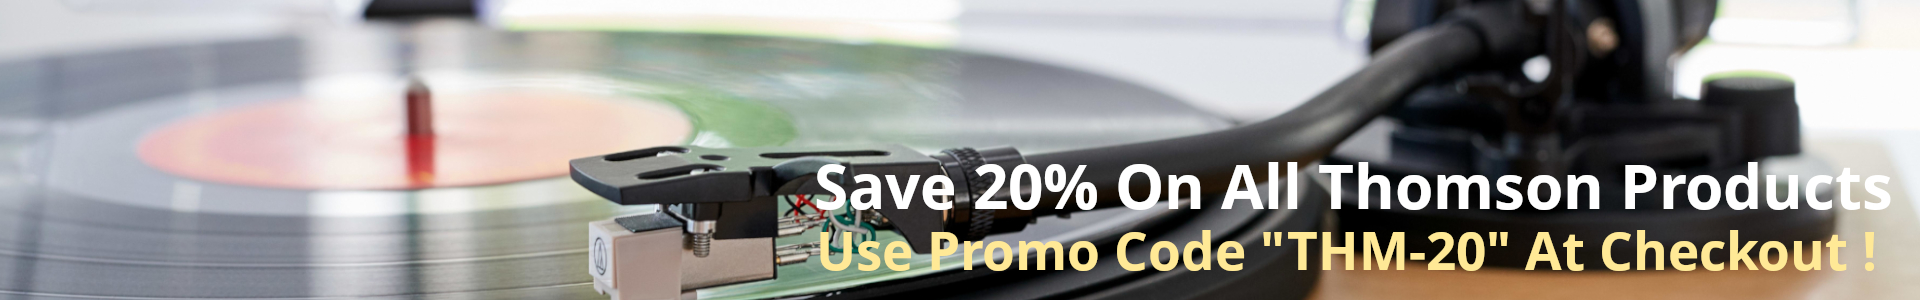 Save 20% On All Thomson Products